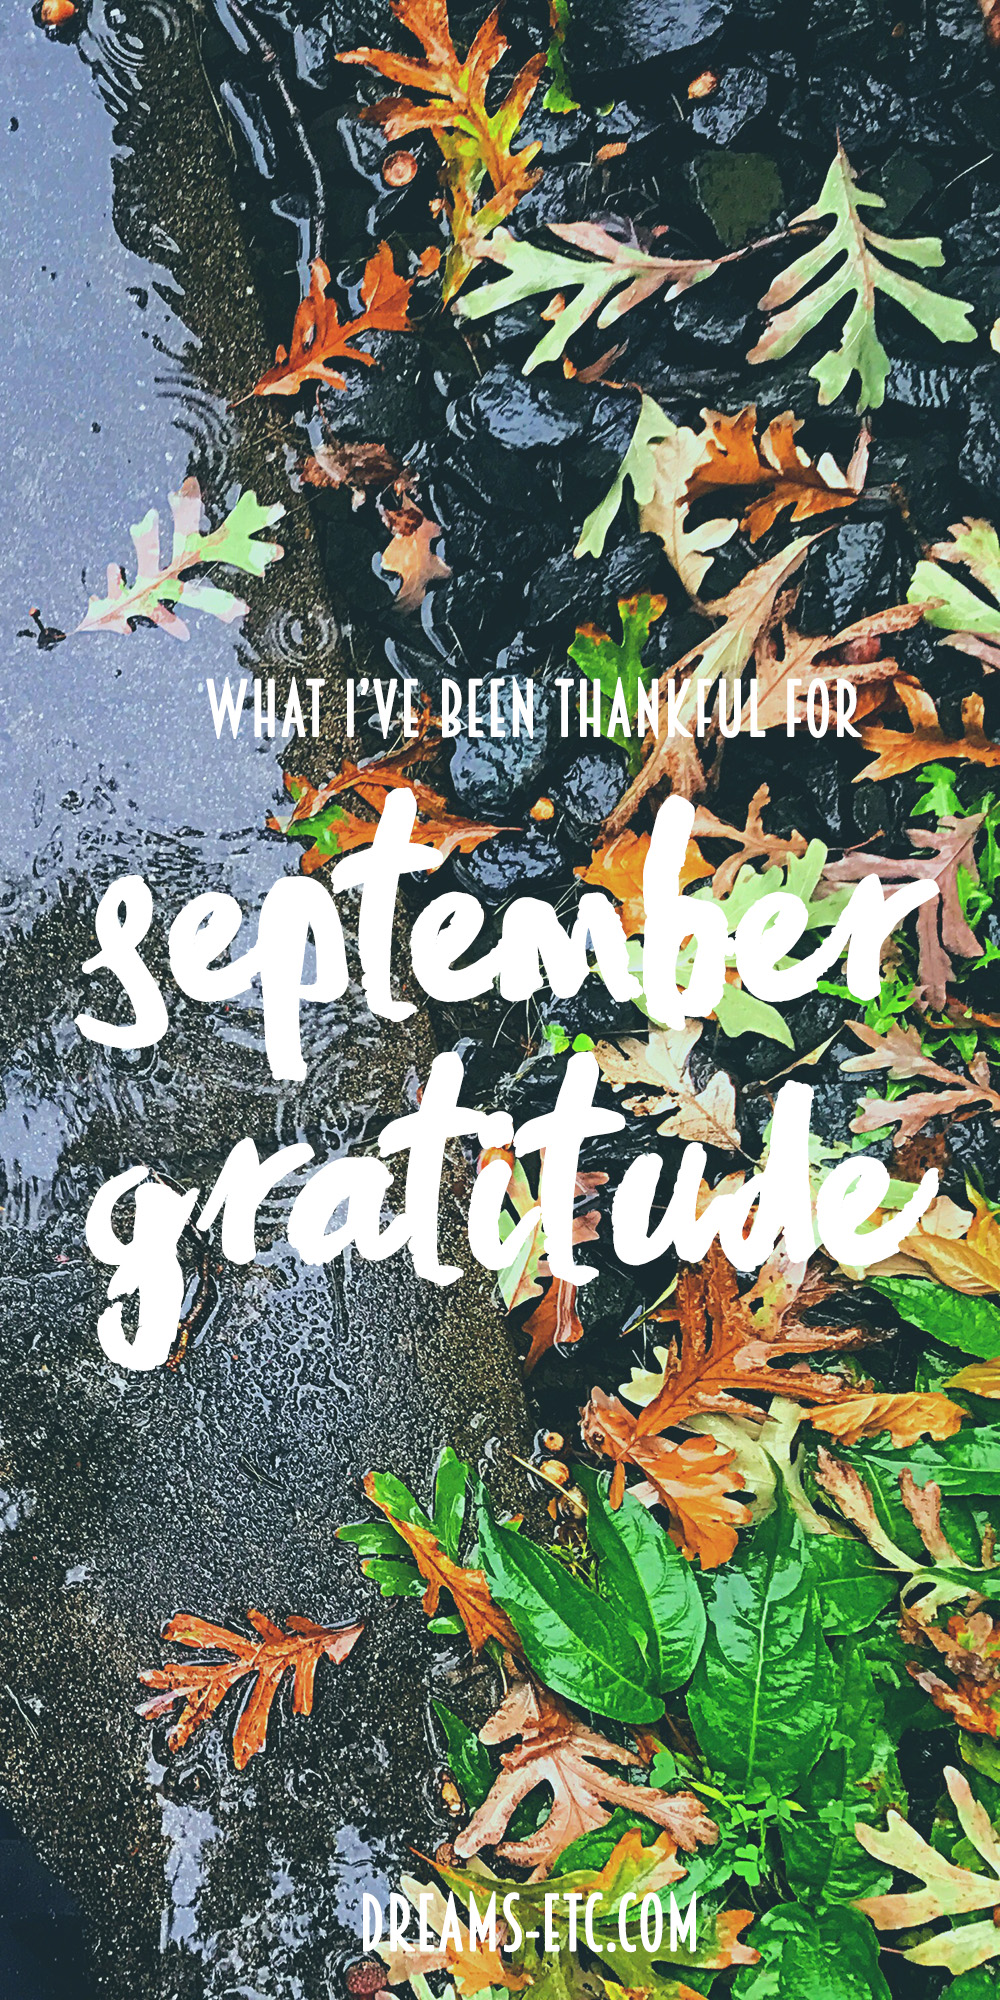 Let's talk what we've been grateful for in September! The last few months have been frustrating, but there's always happiness to be found.